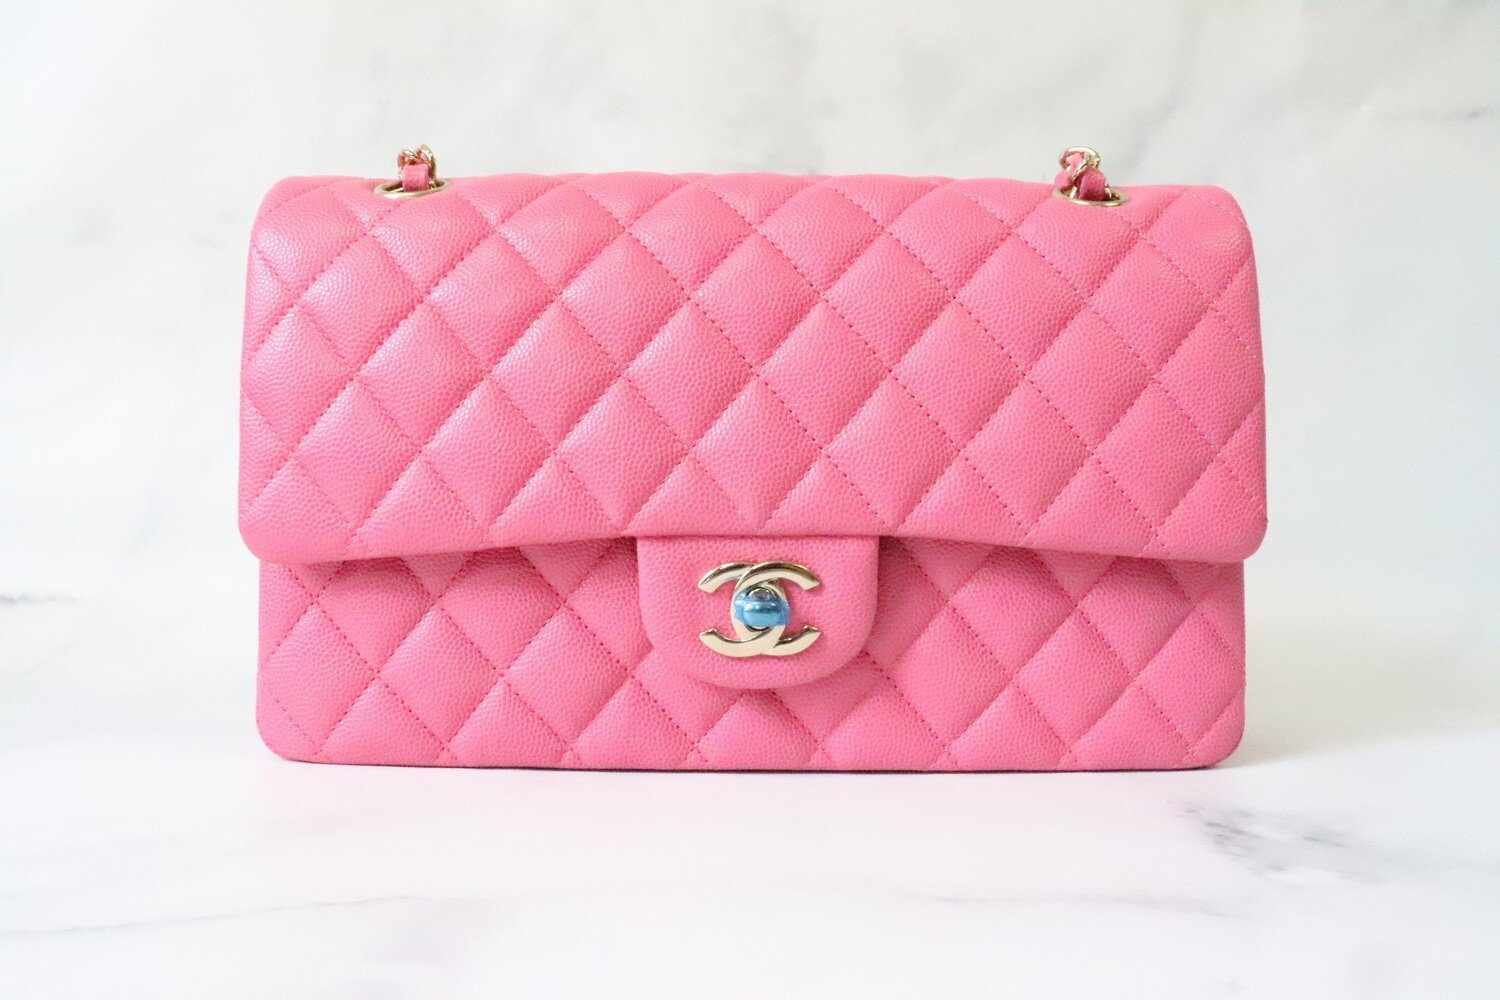 Chanel Classic Medium Double Flap Pink Caviar Leather, Gold Hardware, As New in Box